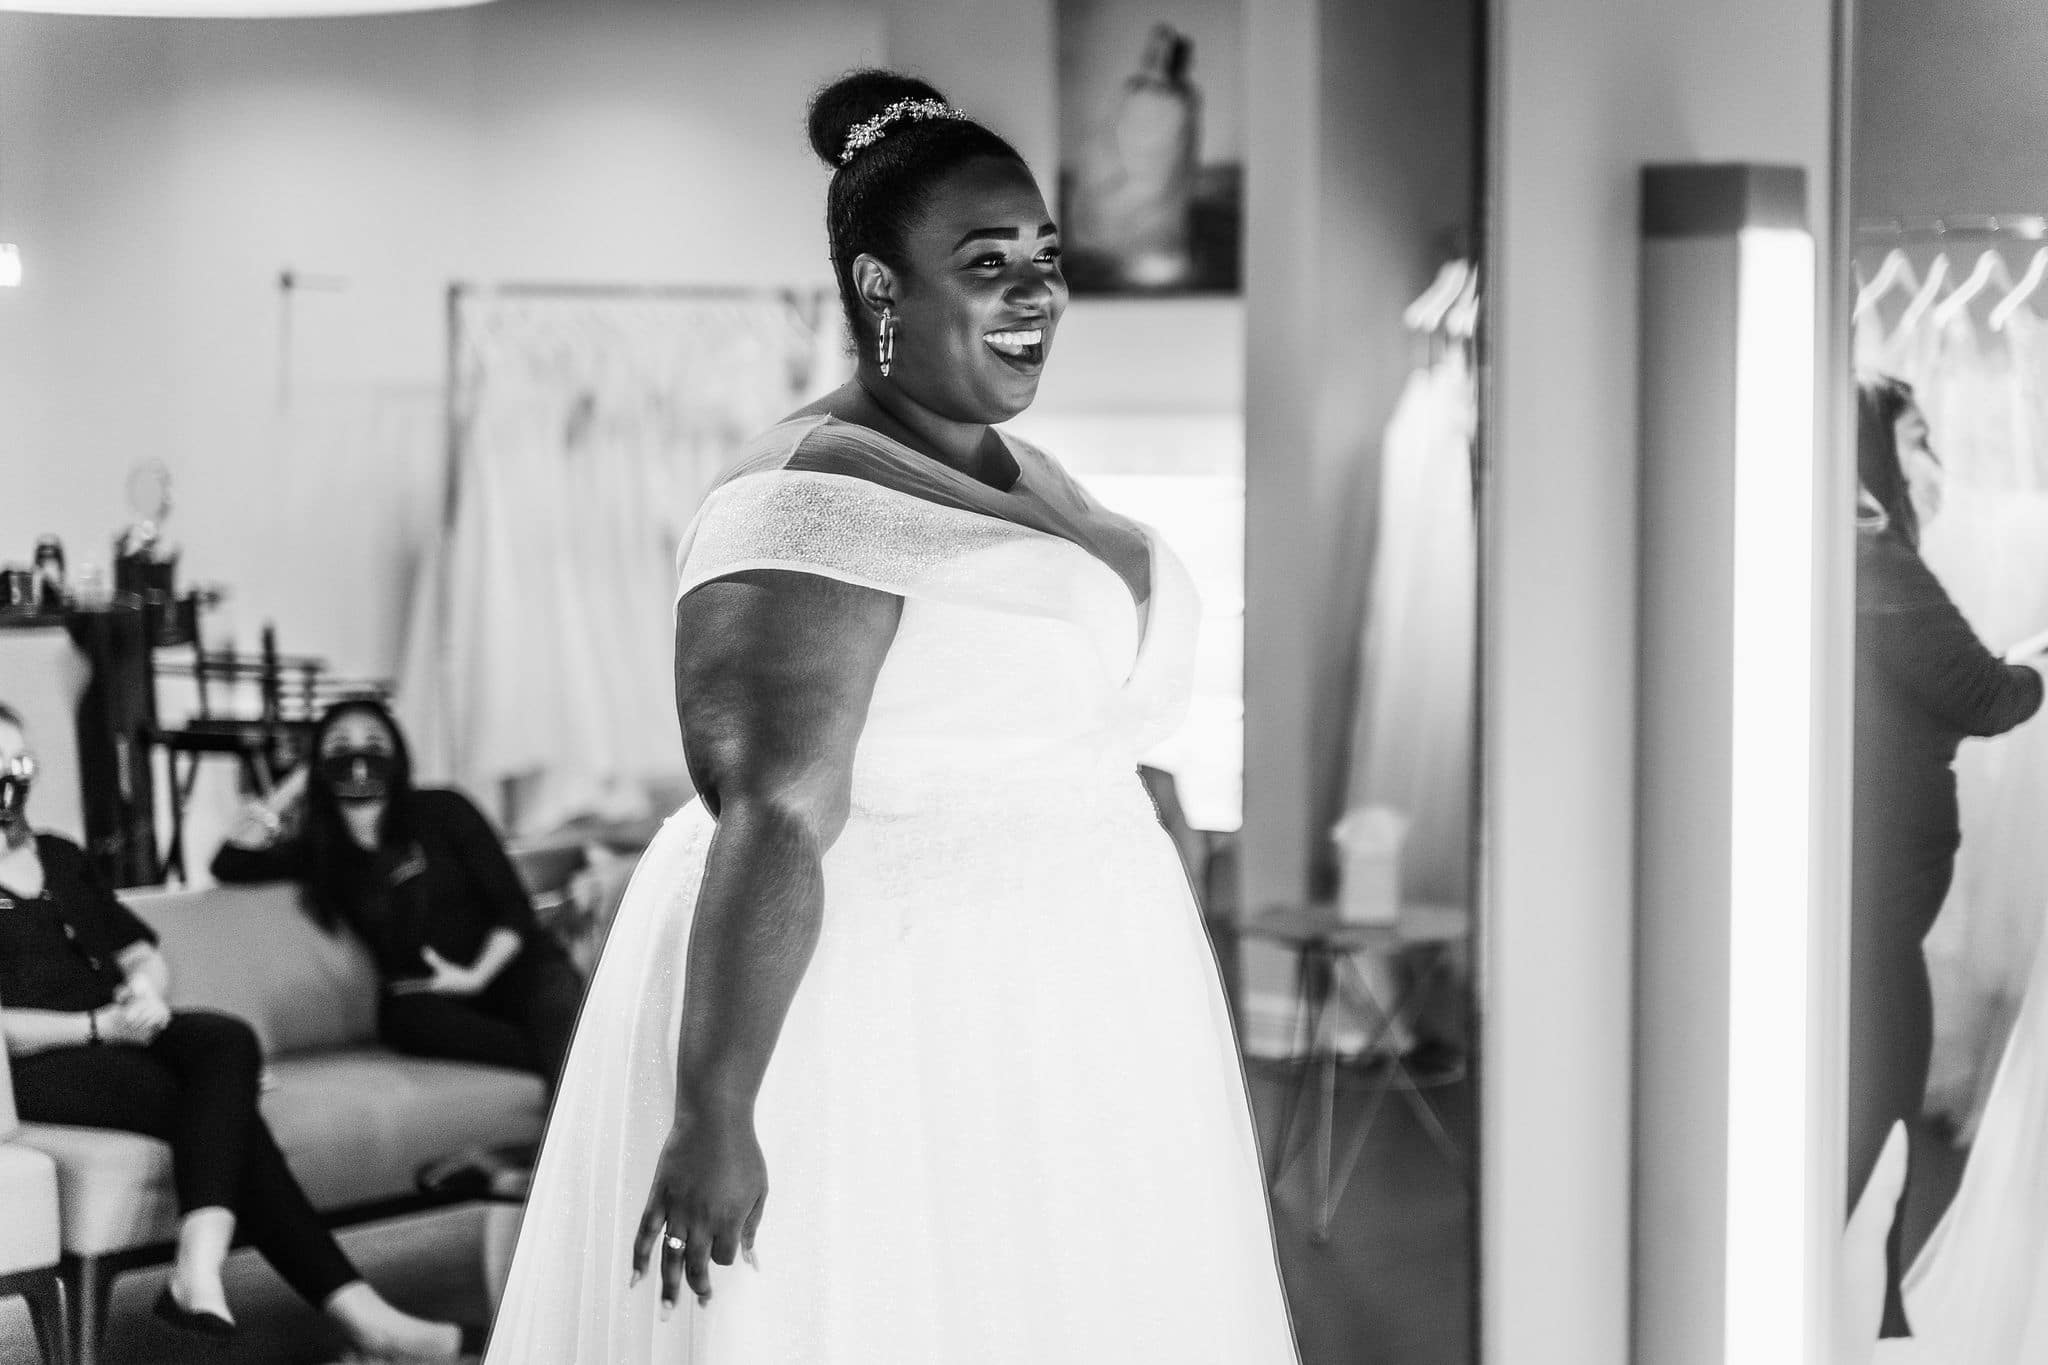 plus size bride in wedding dress grinning ear to ear